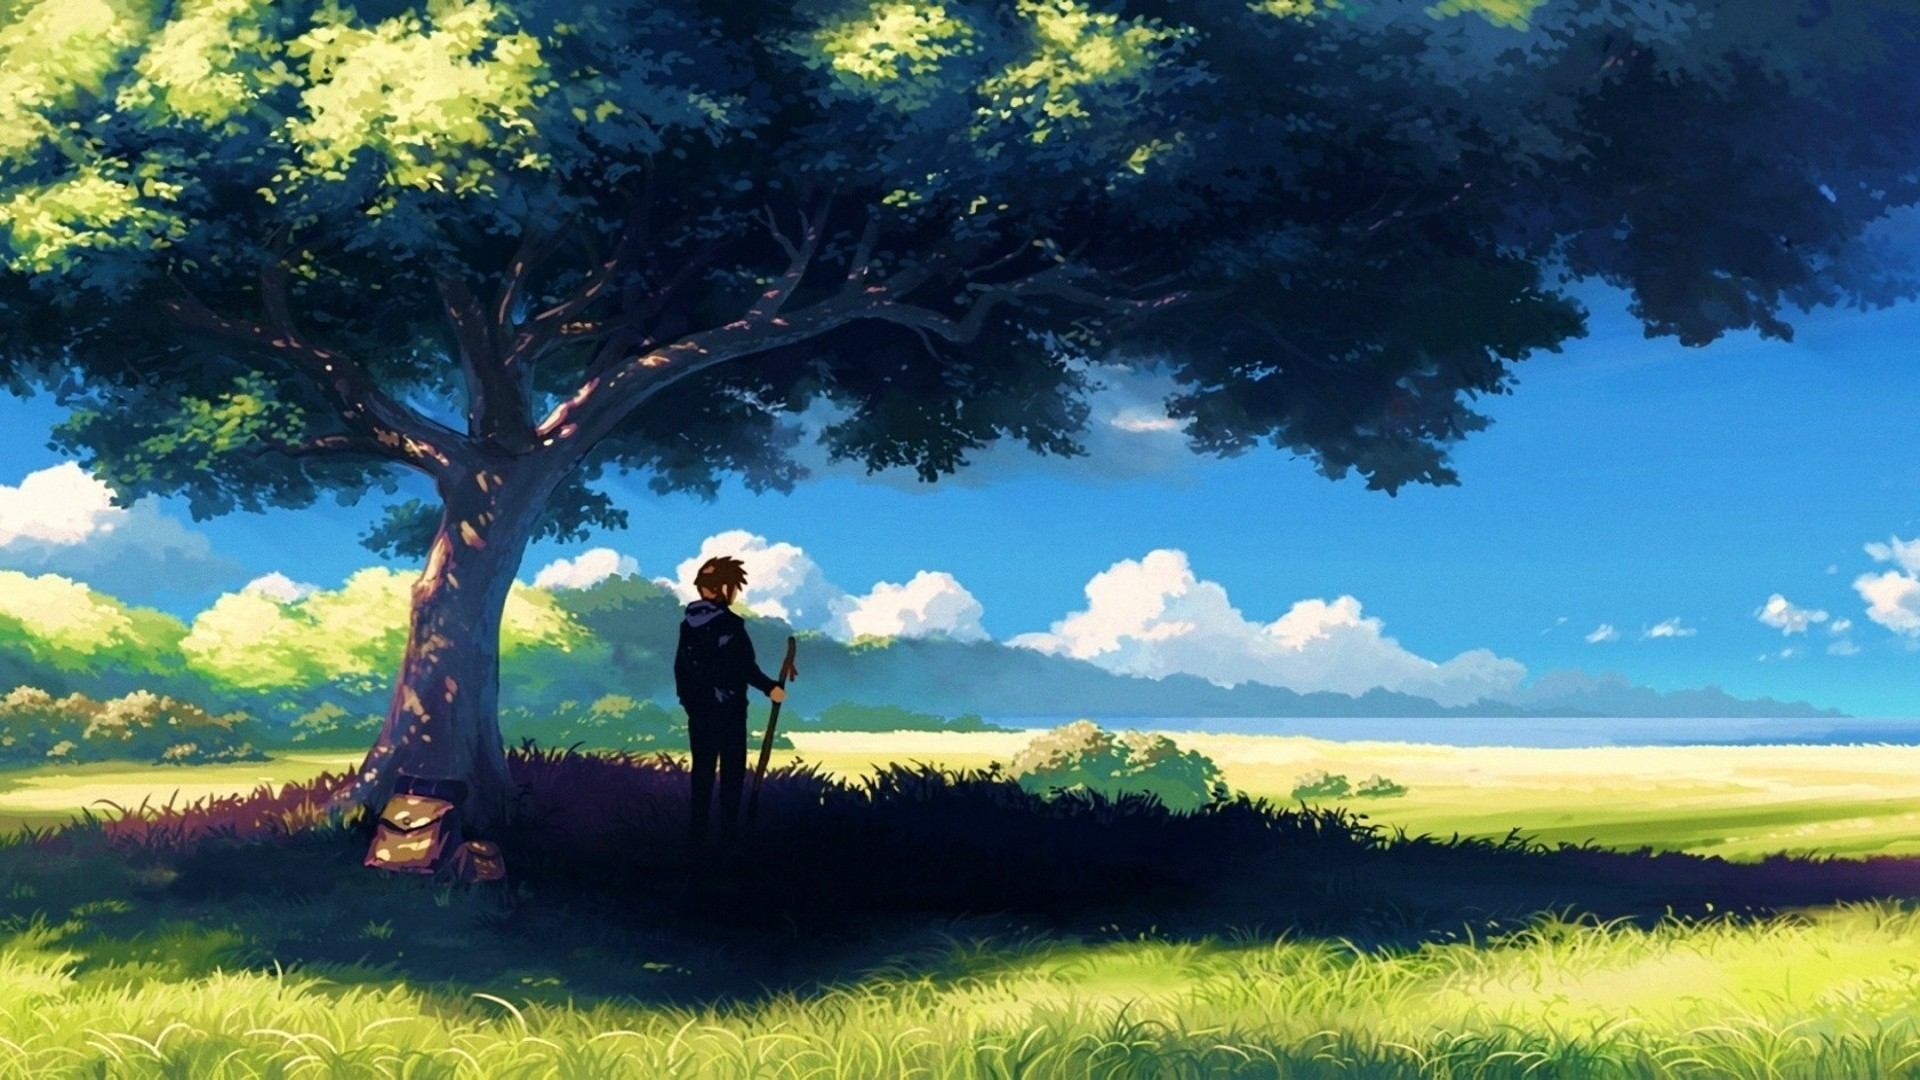 Anime Scenery Wallpaper 48+ images